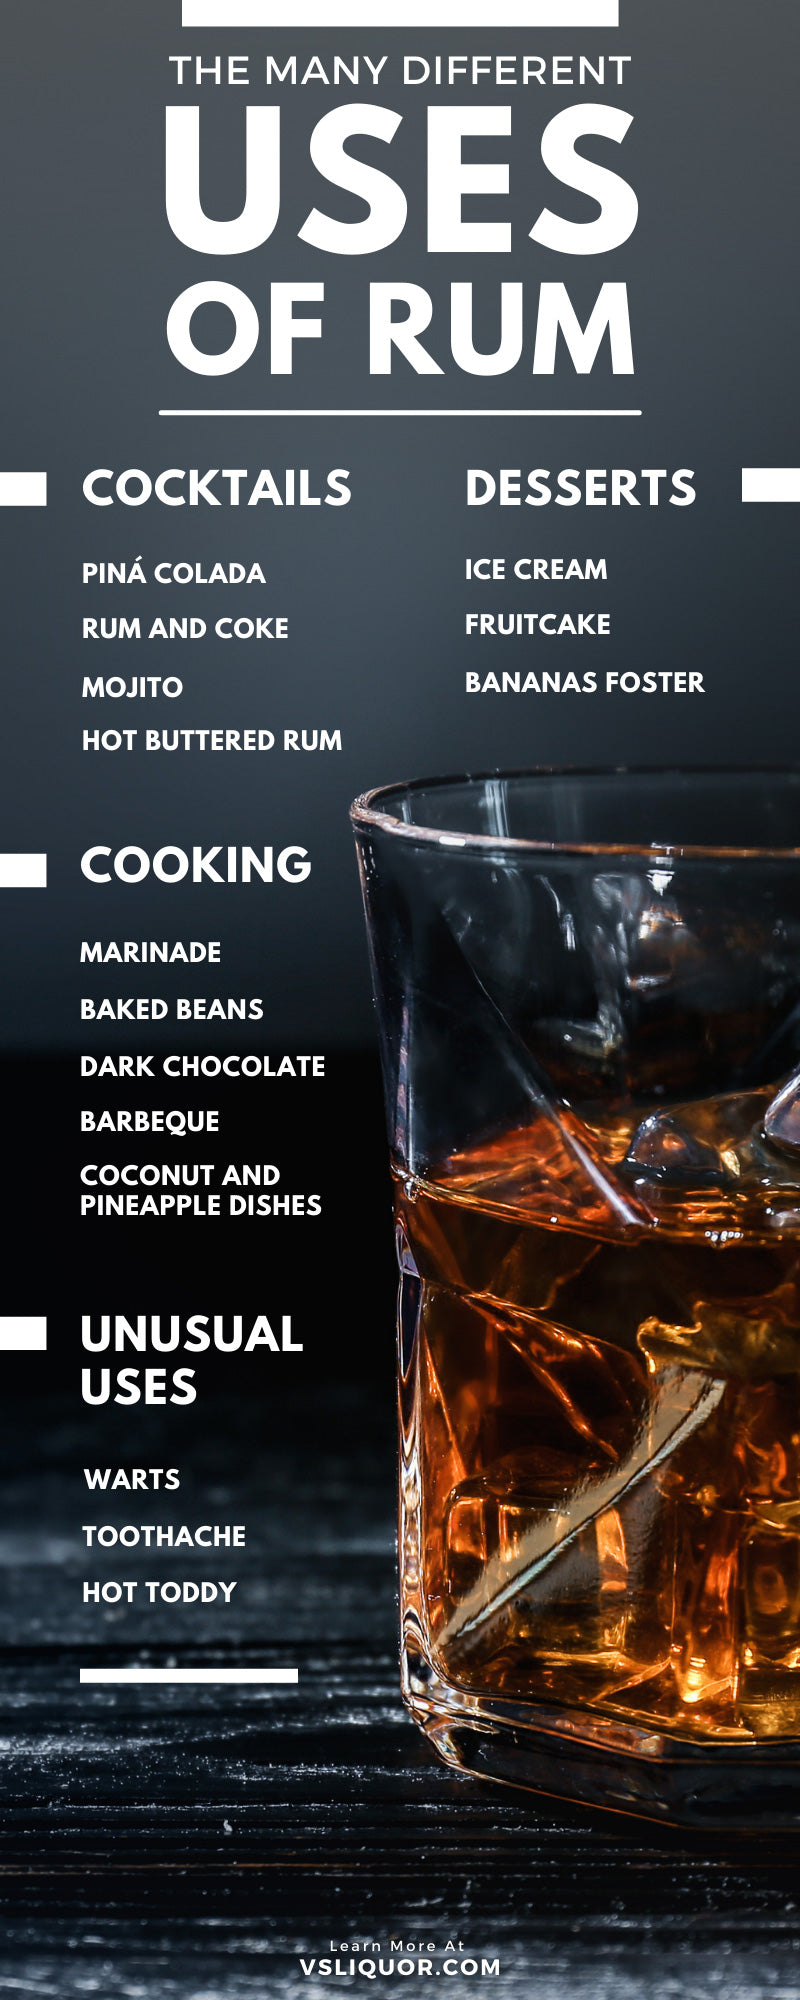 The Many Different Uses of Rum